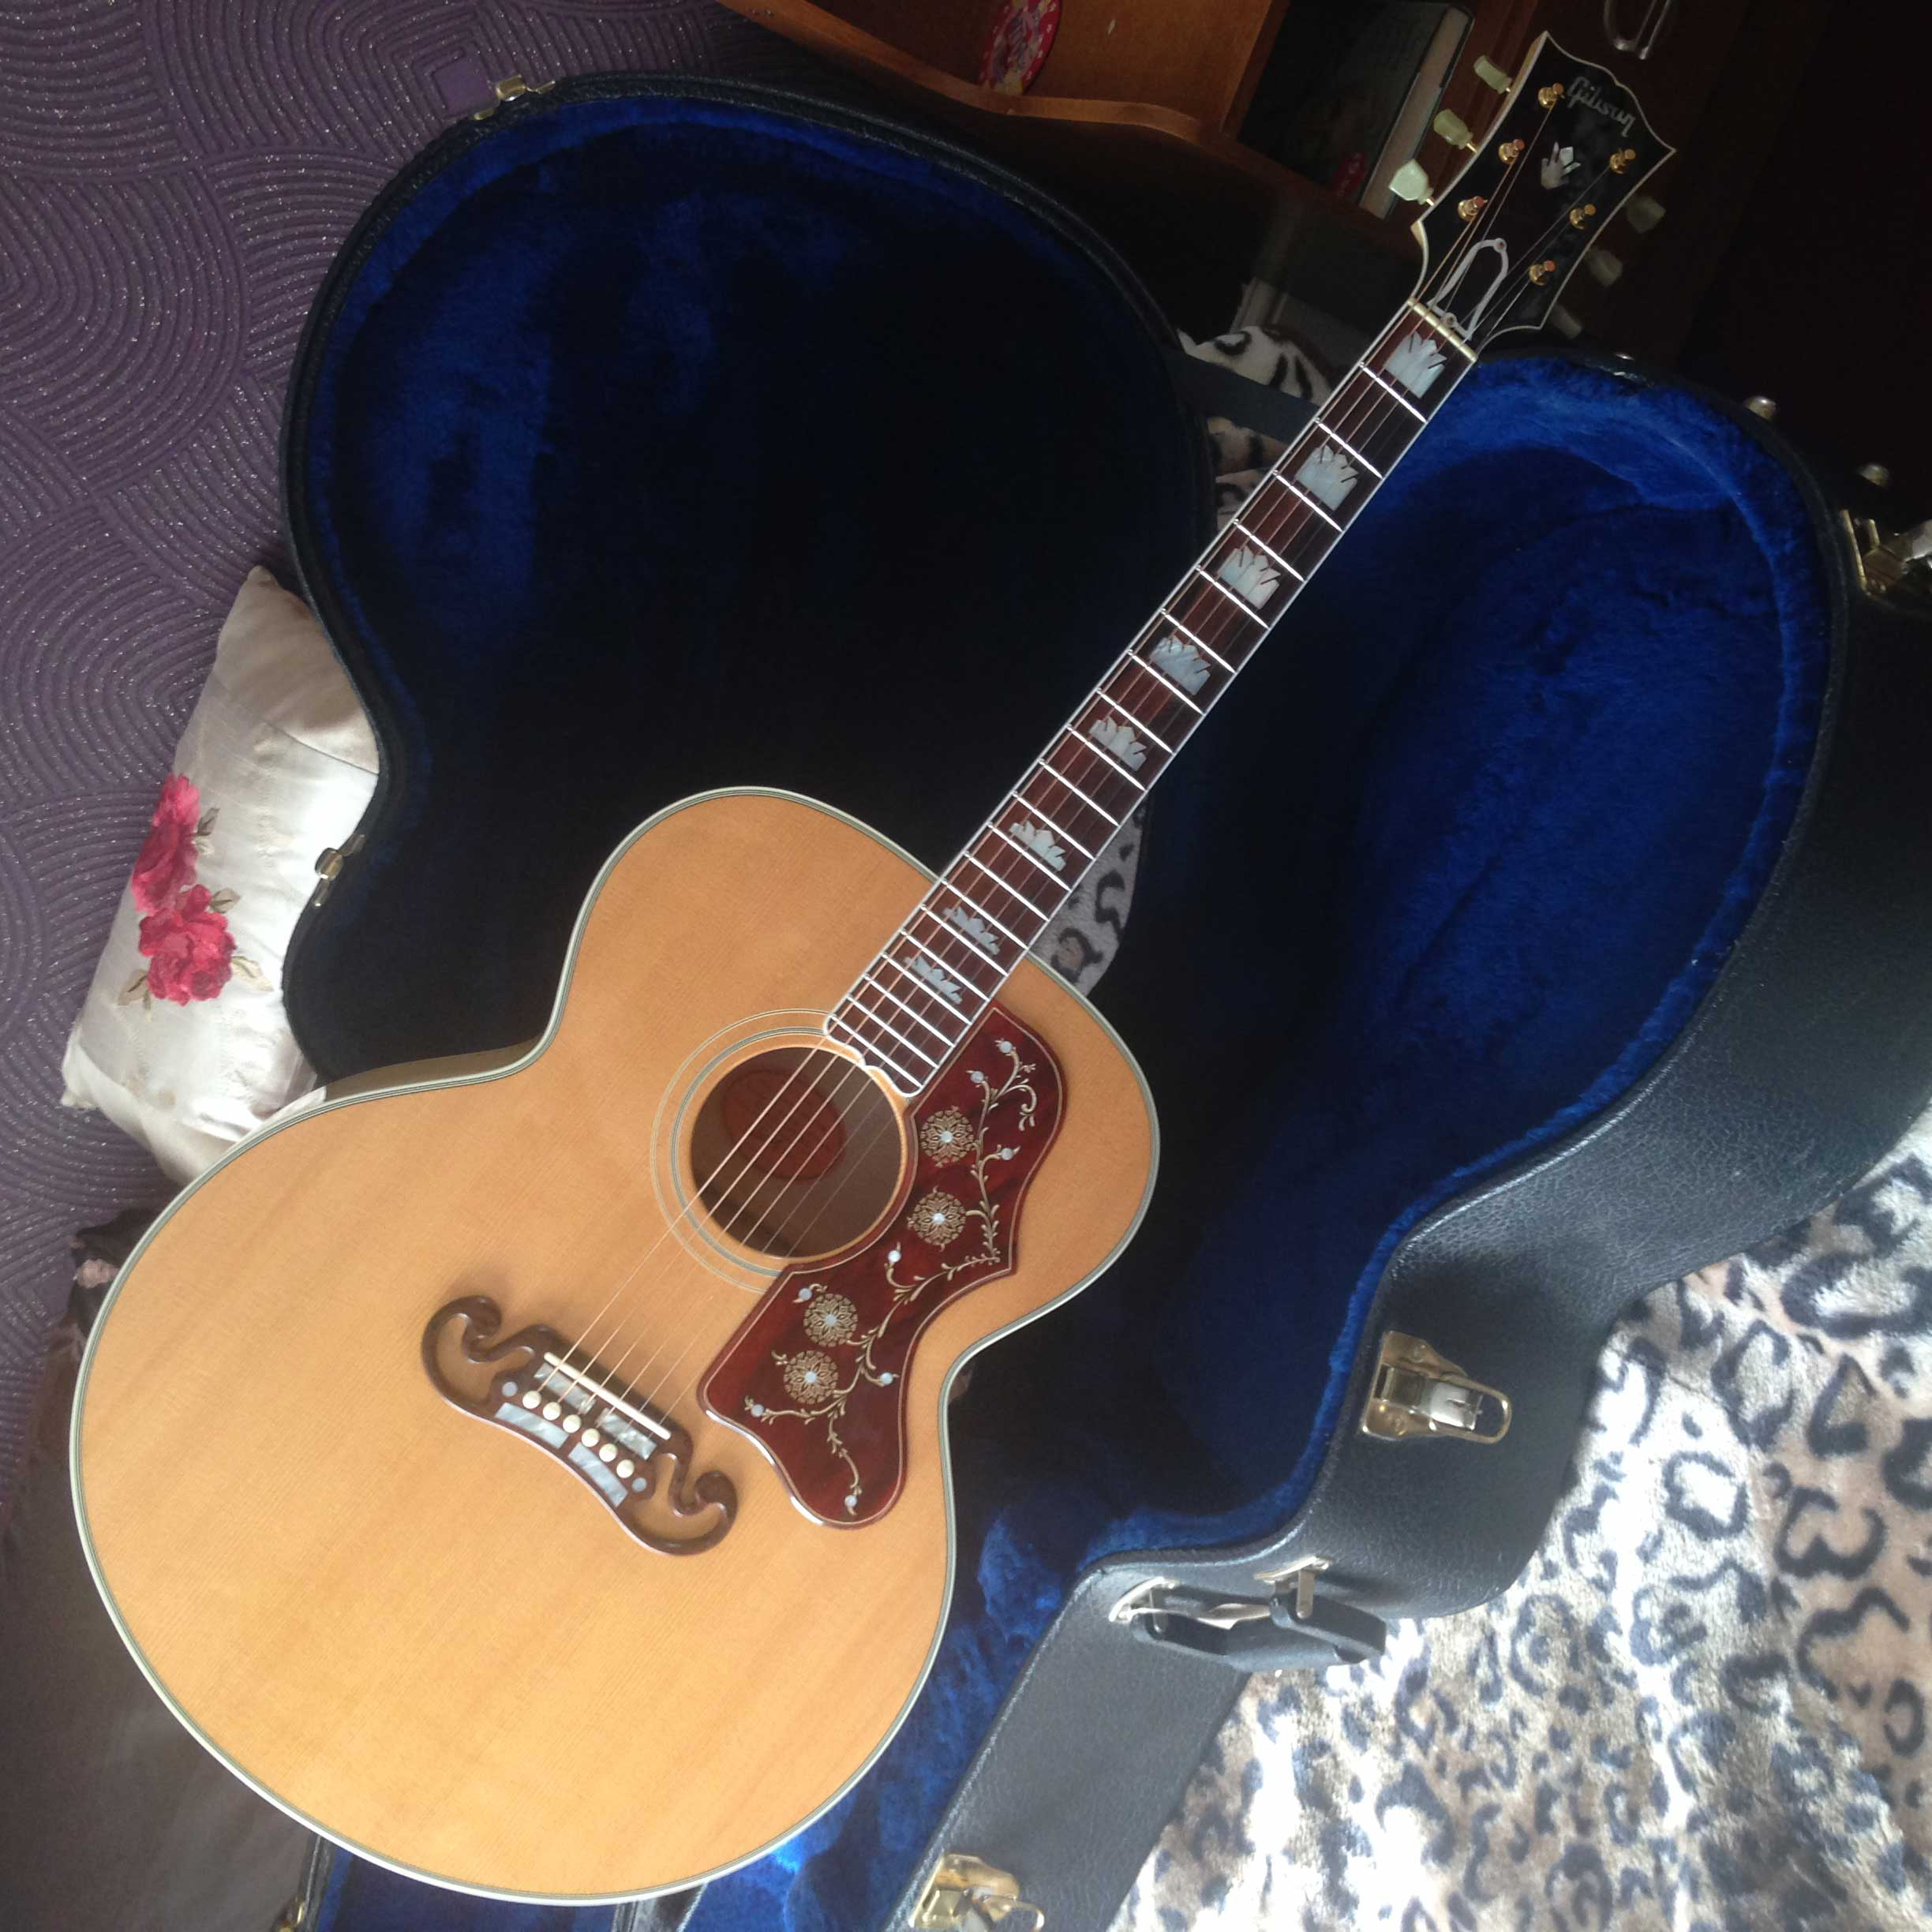 """""""Hi , I am very pleased that i have received my Gibson SJ – 200 Pickguard today and i am absolutely over the moon 100% Happy with this pickguard ! it is amazing and very beautiful!. Thank you so much…. it is brilliant! and it was well packaged too, it came very quickly…. and no faults at all, 5 stars from me  :)""""  Danny - UK"""